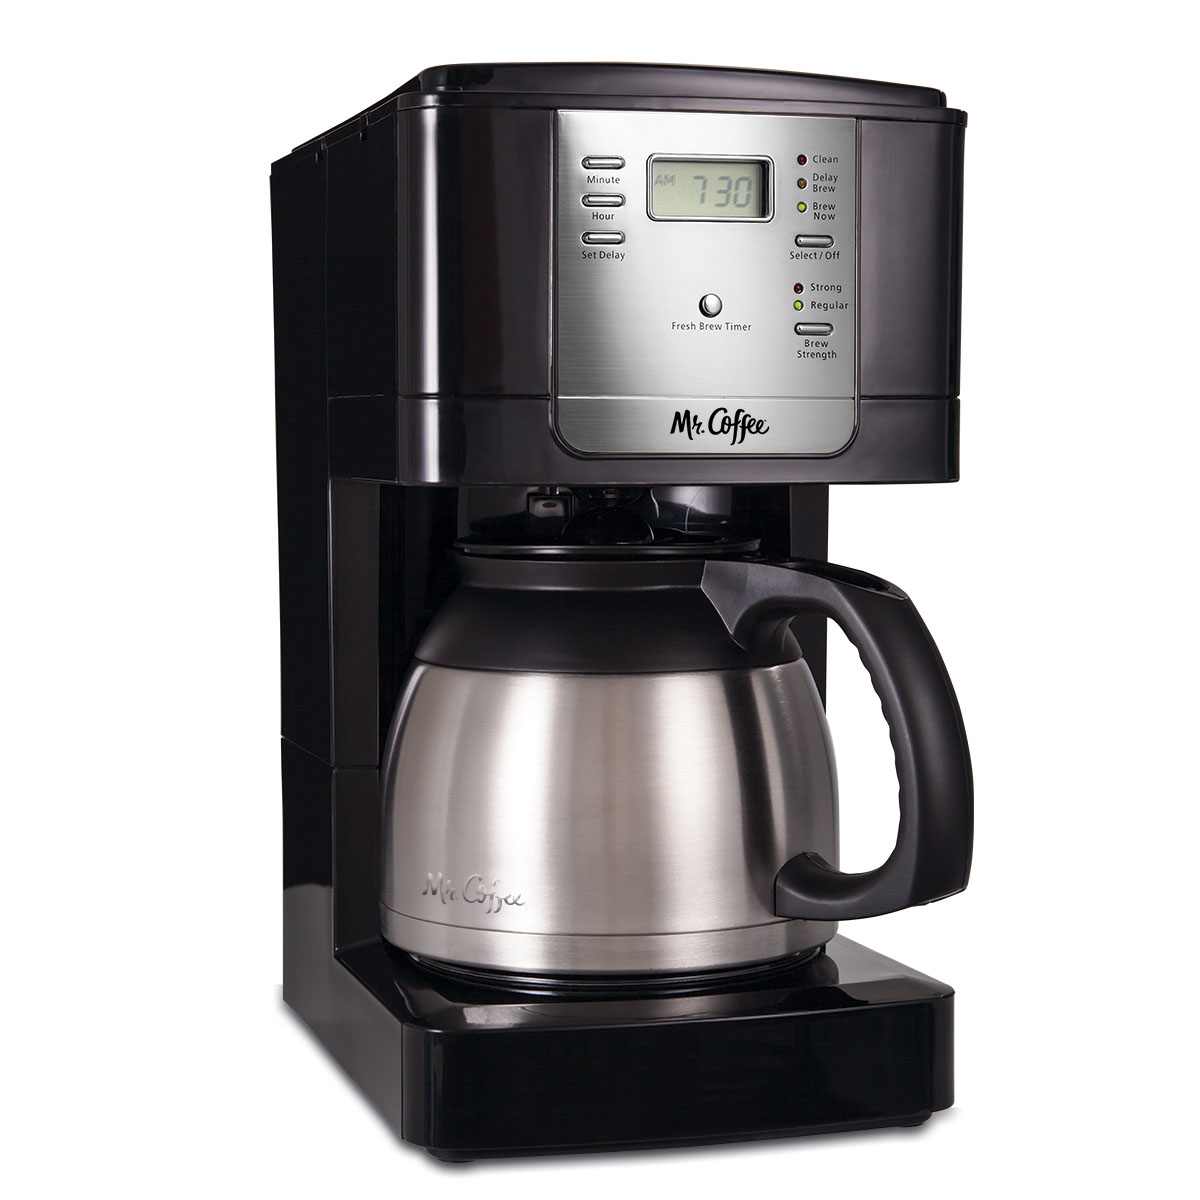 Mr. Coffee 8-Cup Thermal Programmable Coffee Maker, Stainless Steel (JWTX85)